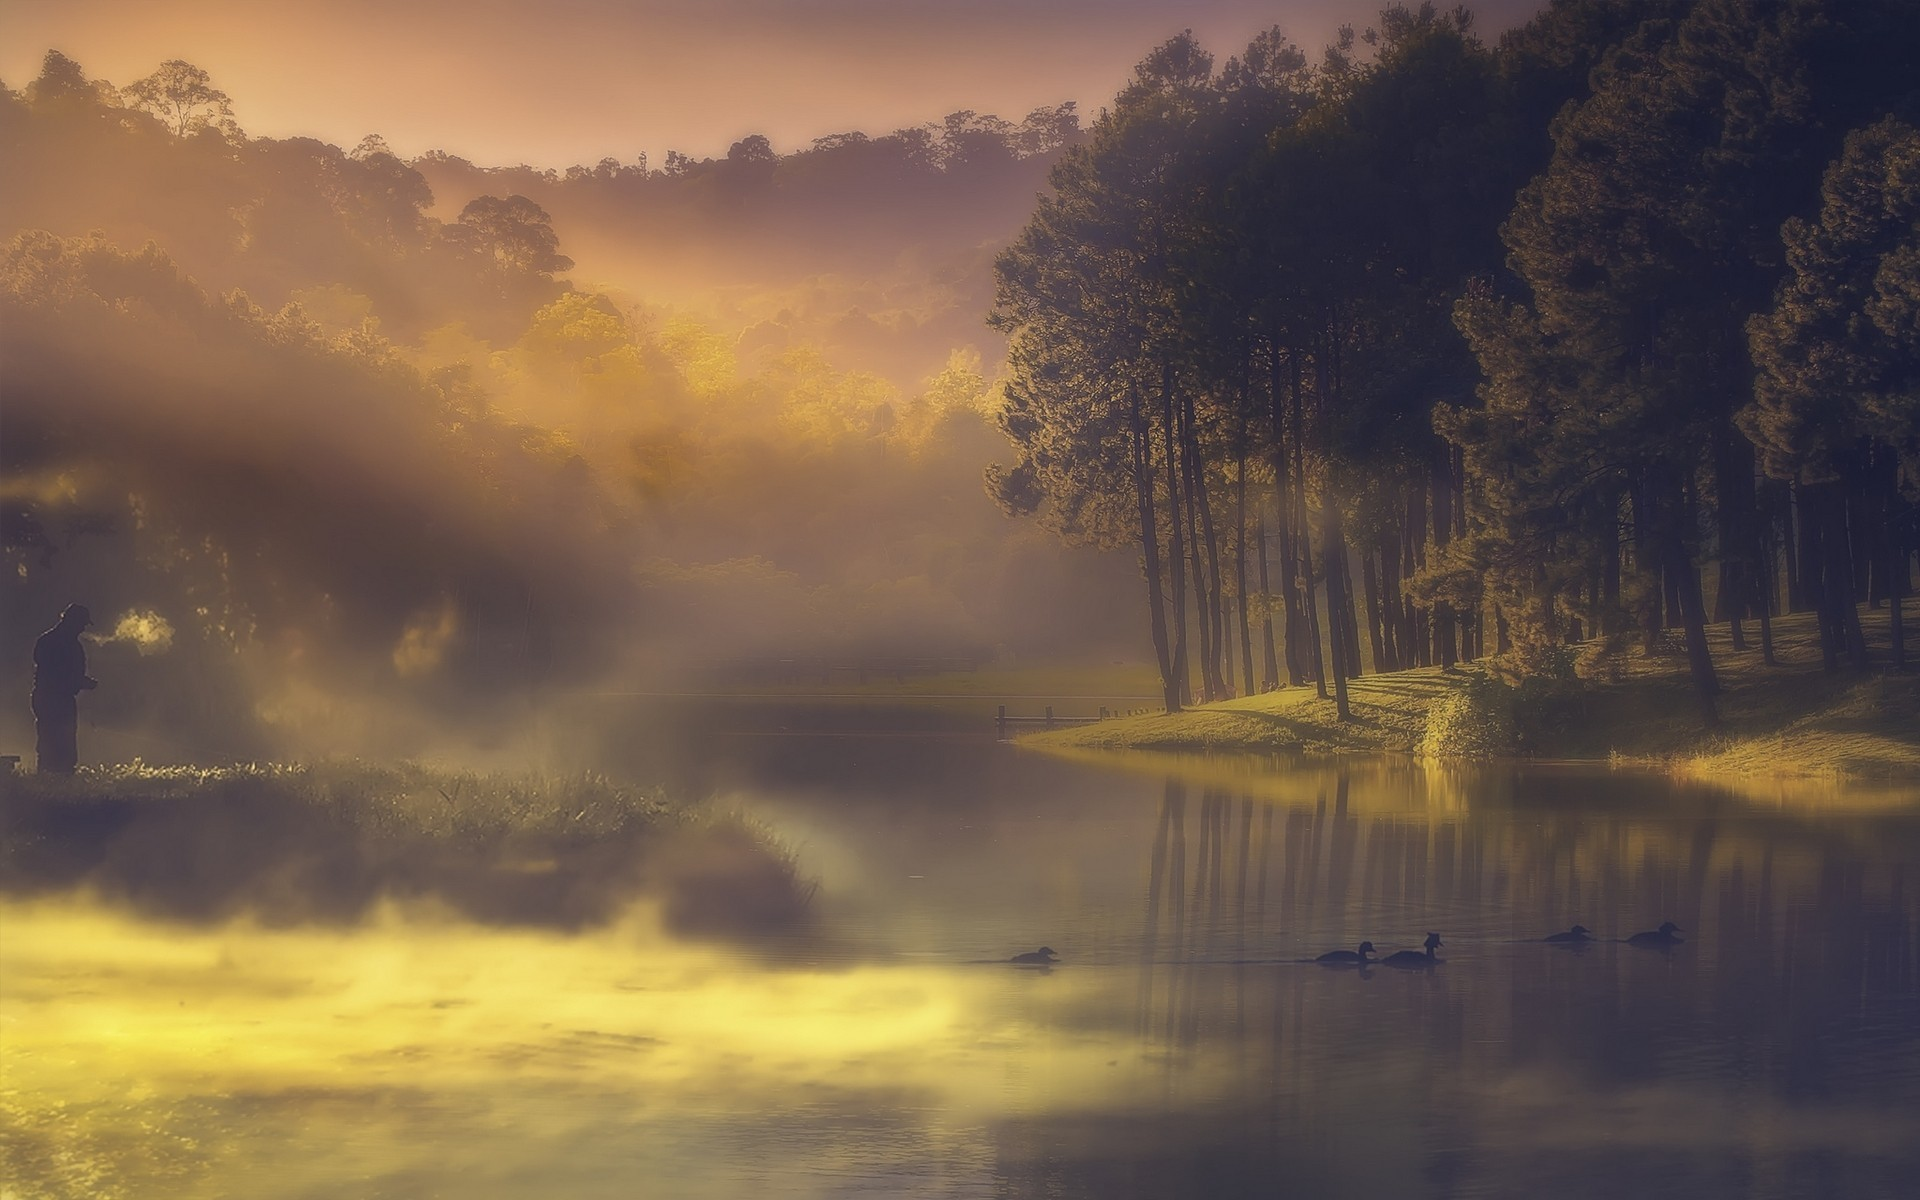 Hd Painting Wallpapers Download Trees Brume Duck Lake Forest Landscape Sunset